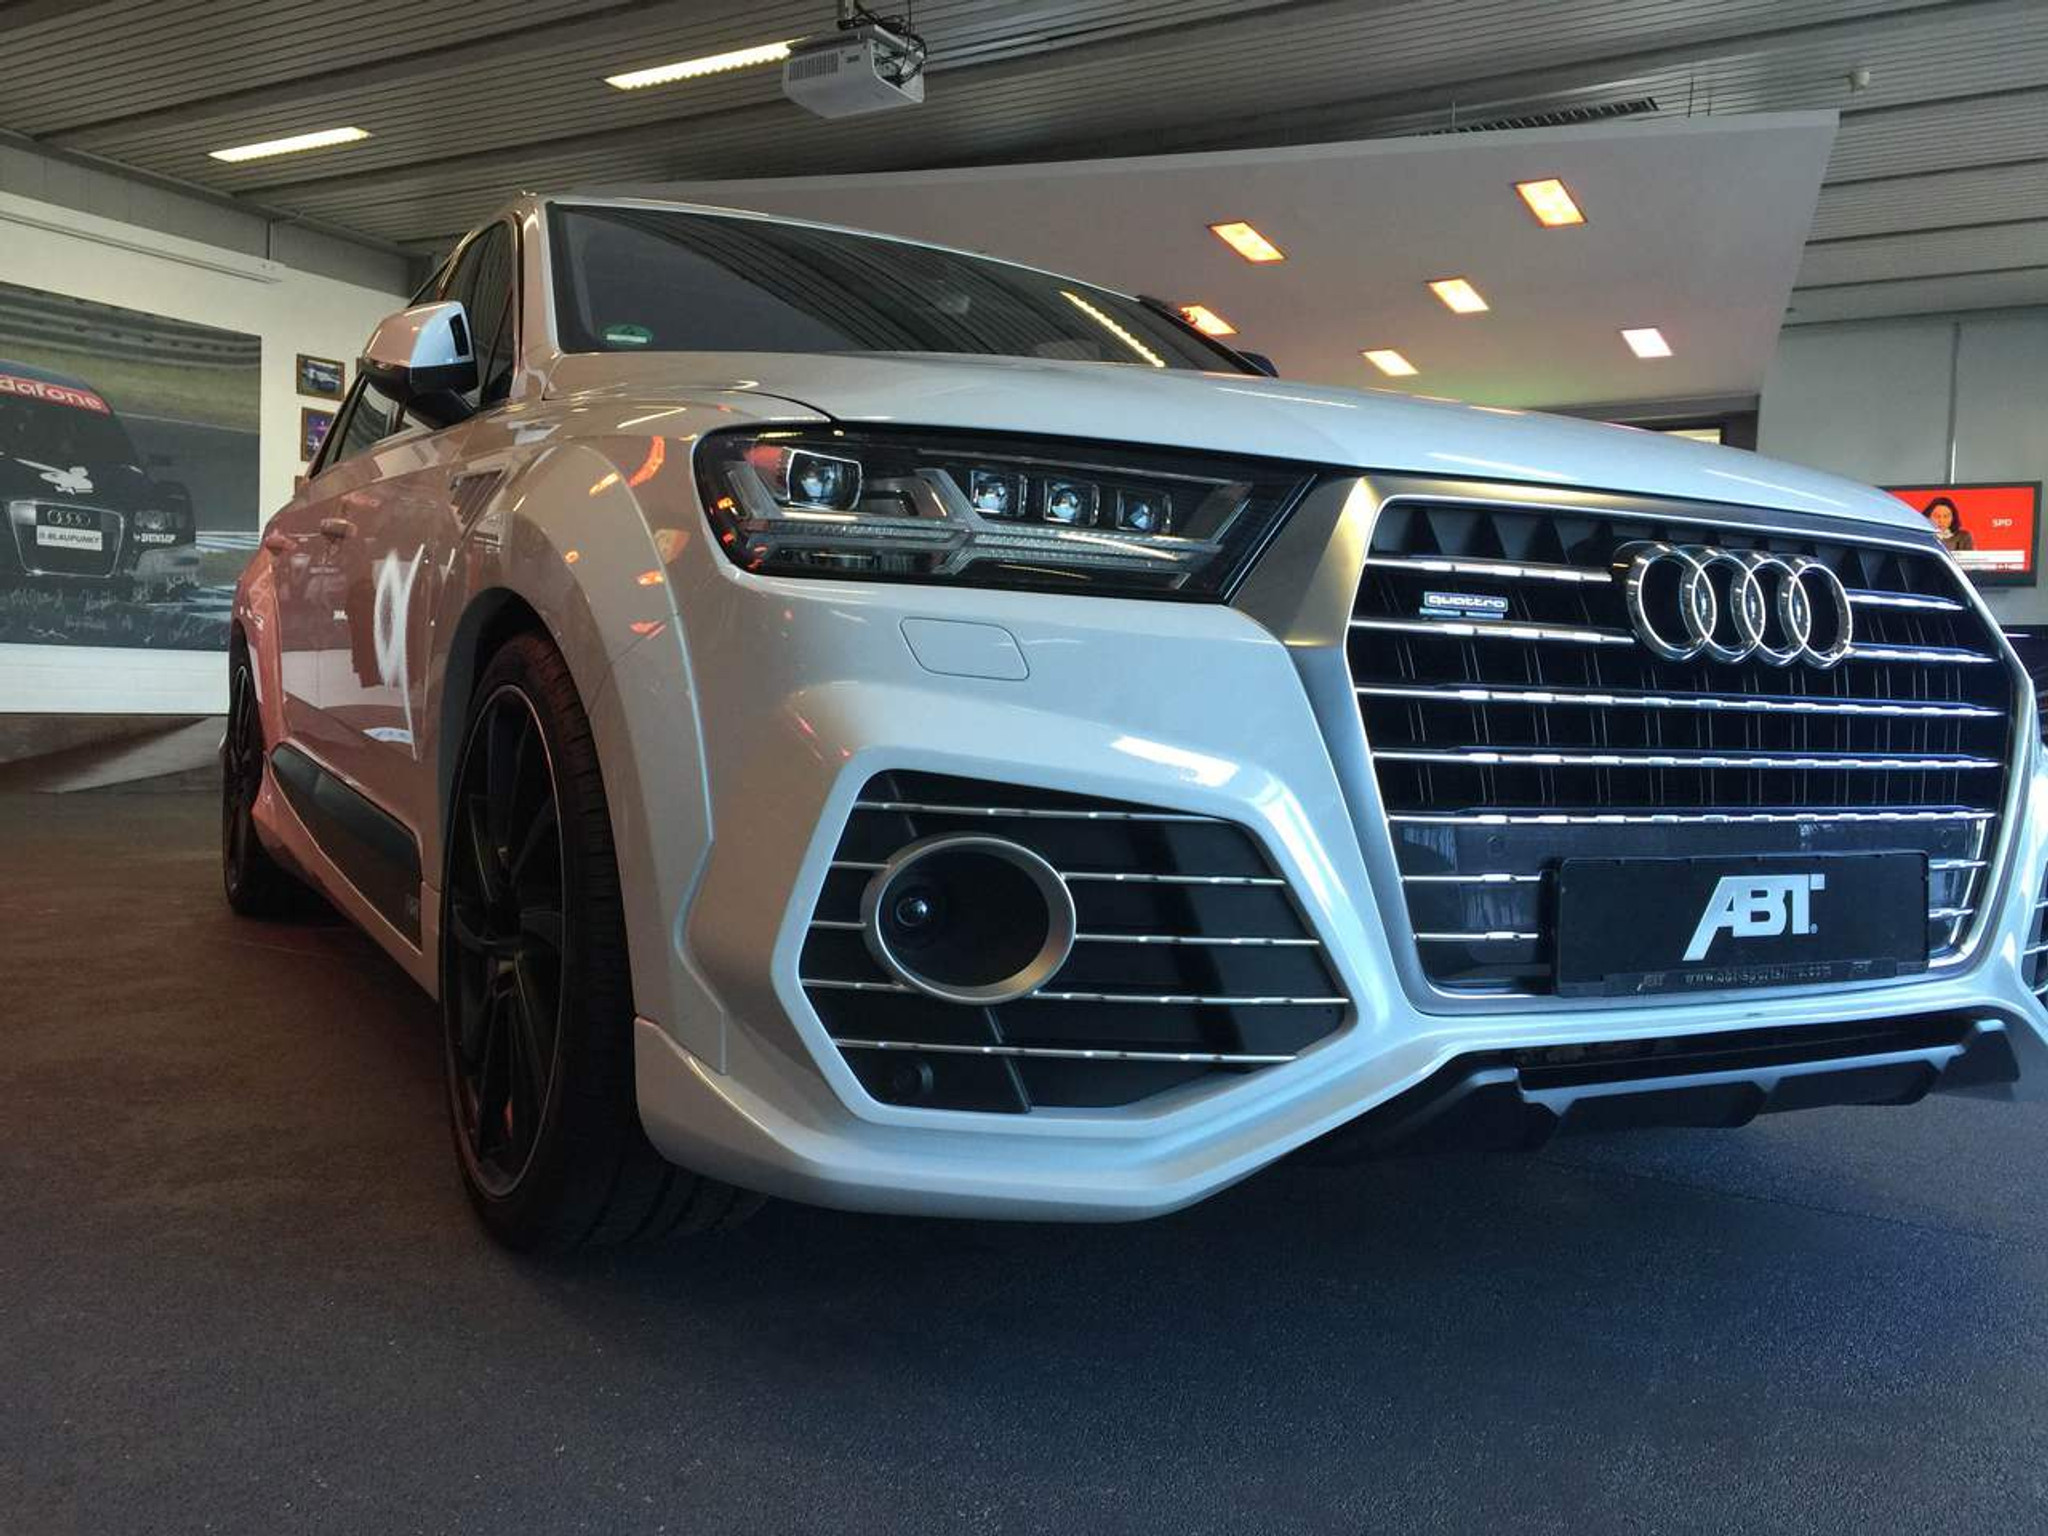 Audi Sq7 2016 Abt Wide Body Kit Meduza Design Ltd